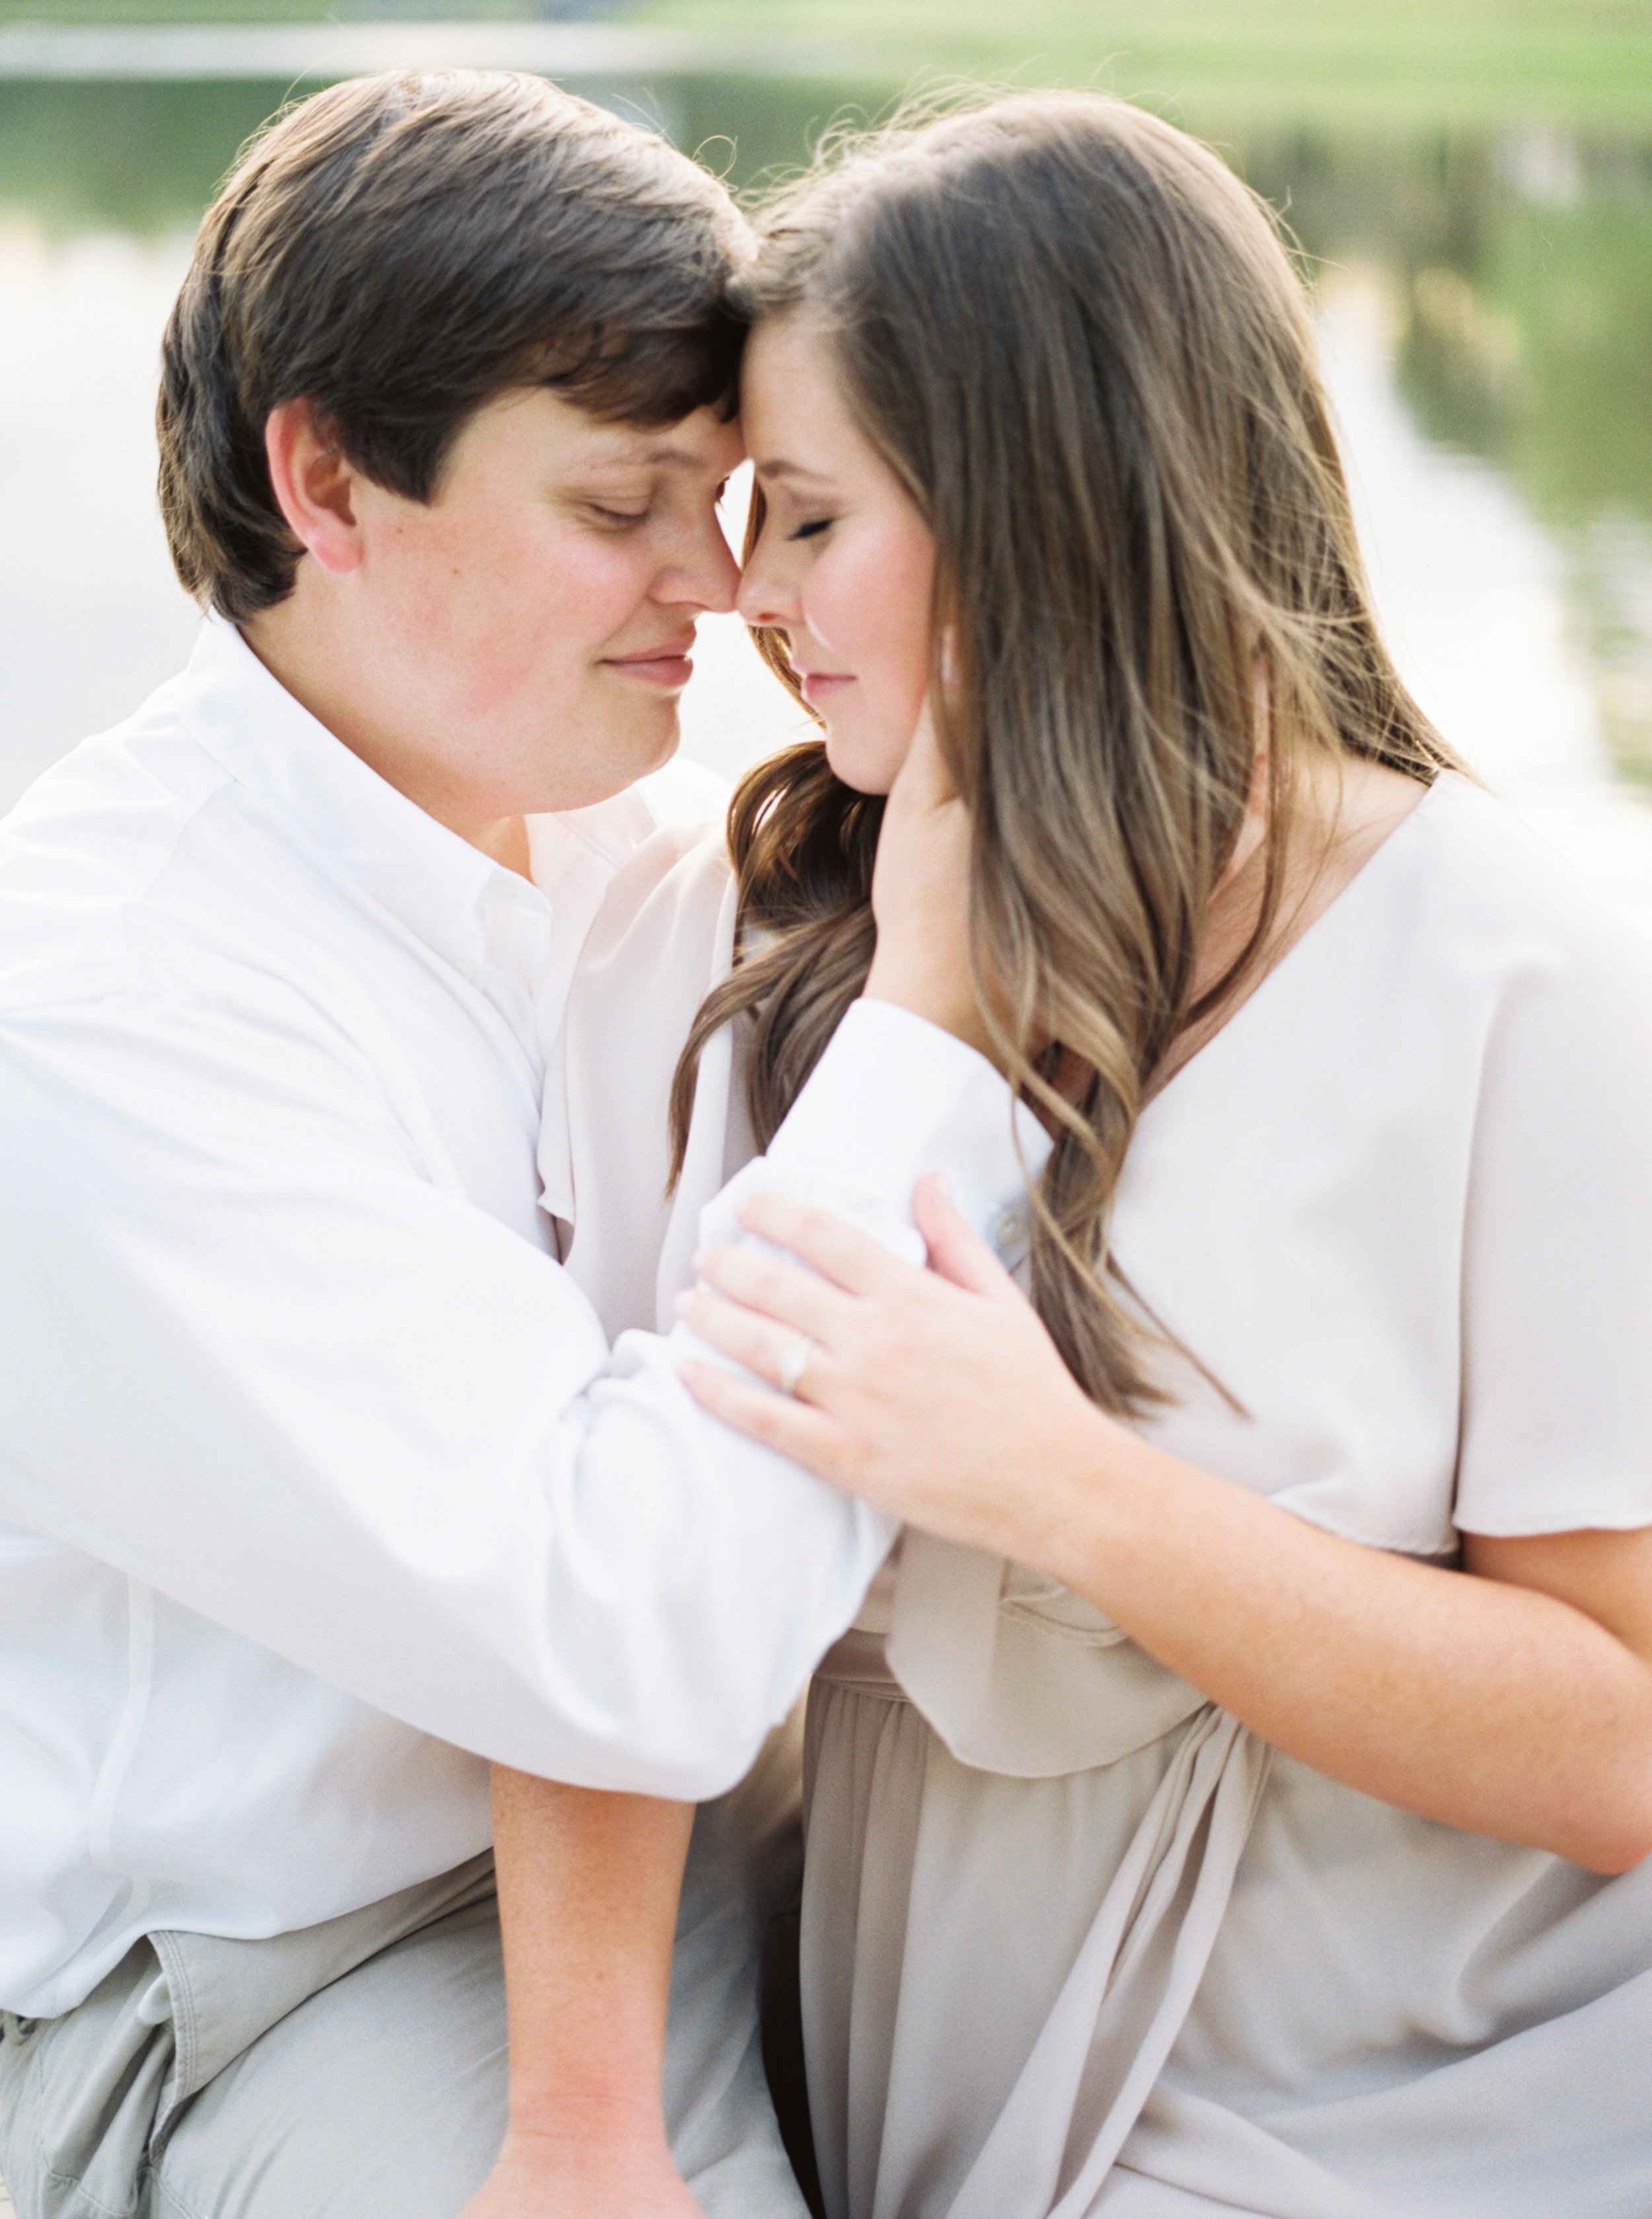 Landon_Grant_Carter_Film_Engagement_Session_Lake_Fallen_Photography_Columbus_Georgia-55.JPG